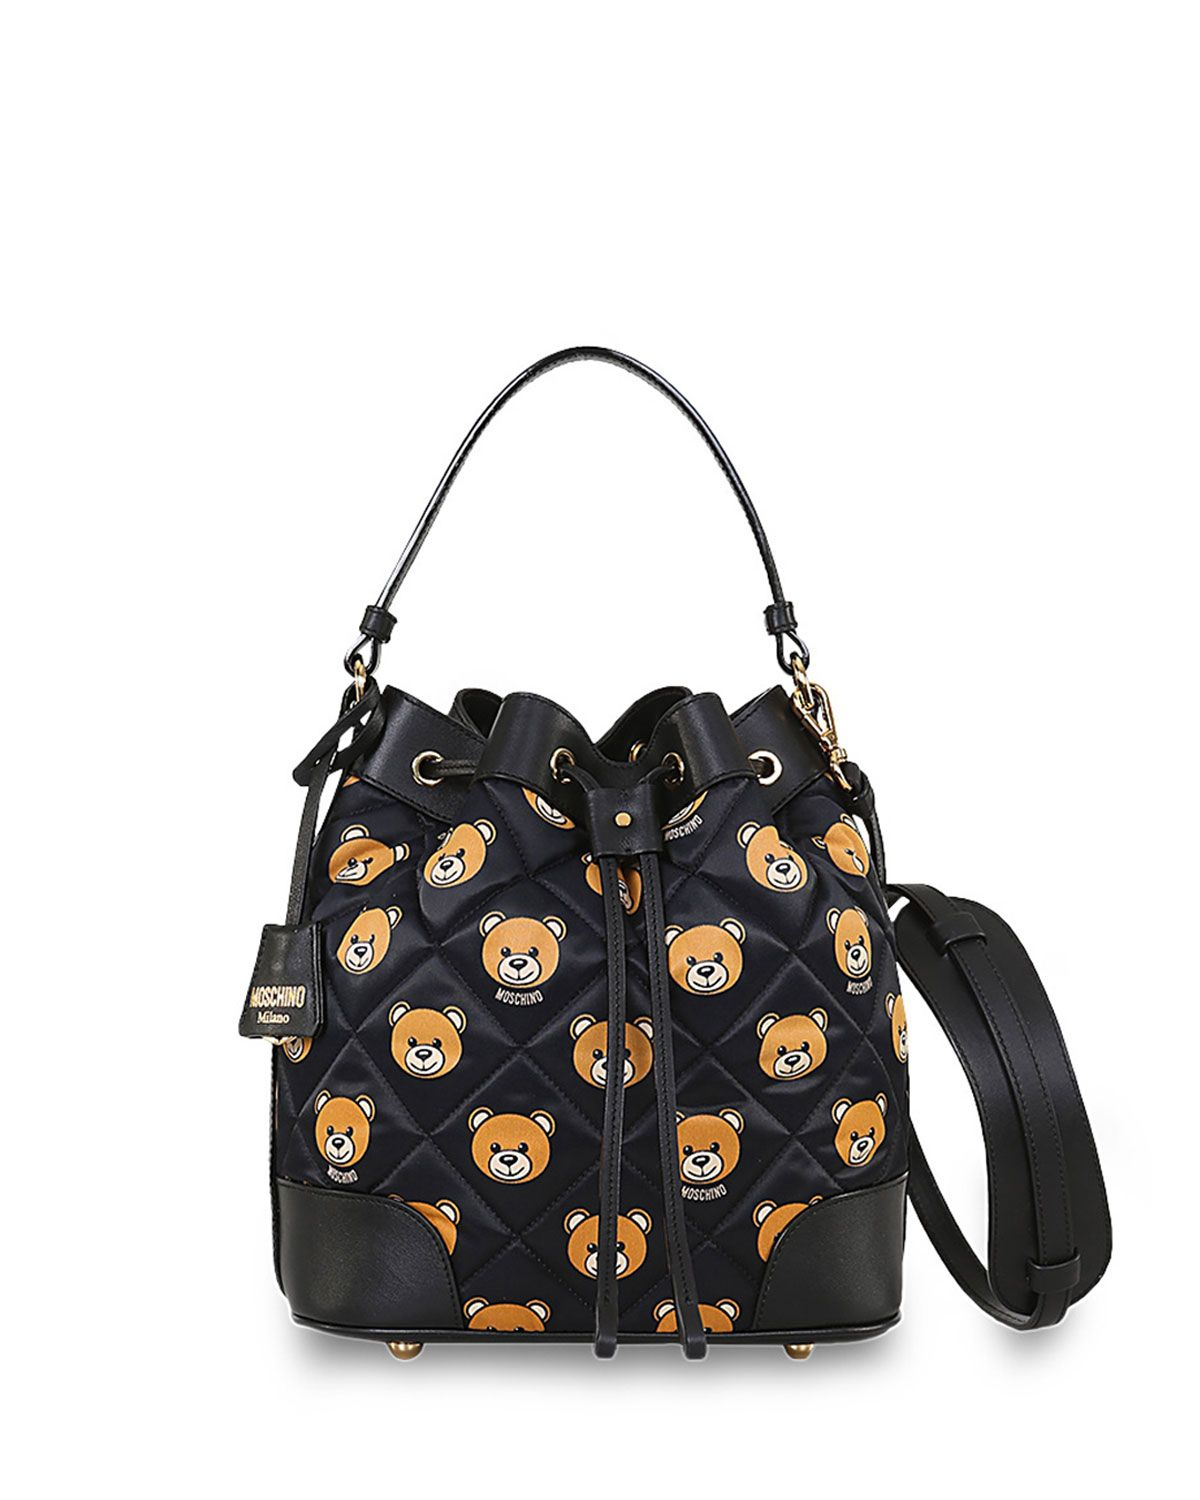 Leather quilted handbags and purses - Moschino Quilted Small Teddy Bear Print Bucket Bag